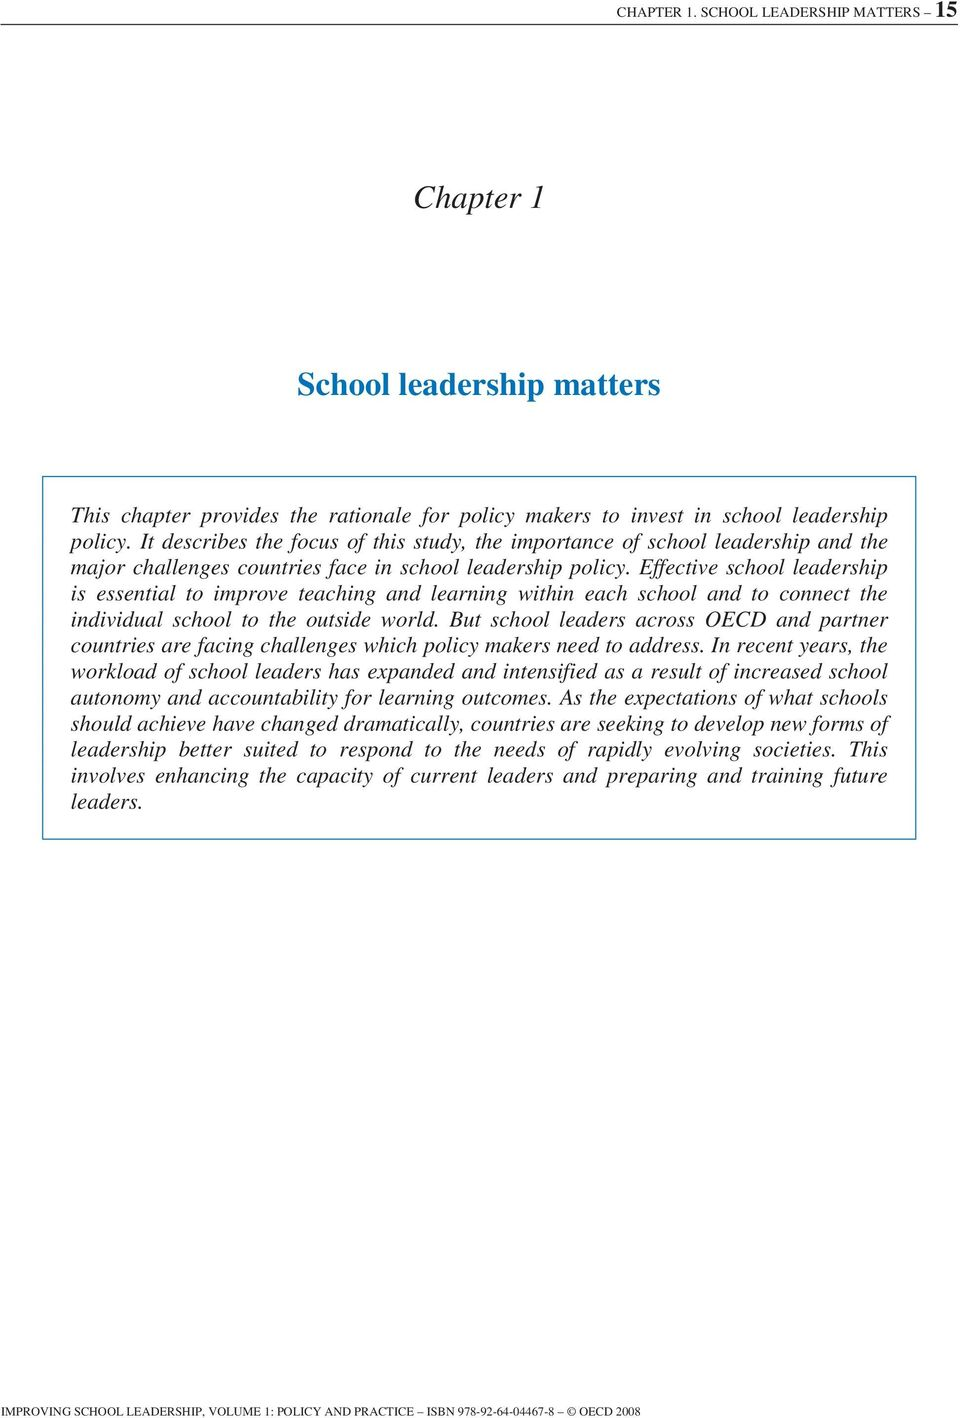 Effective school leadership is essential to improve teaching and learning within each school and to connect the individual school to the outside world.